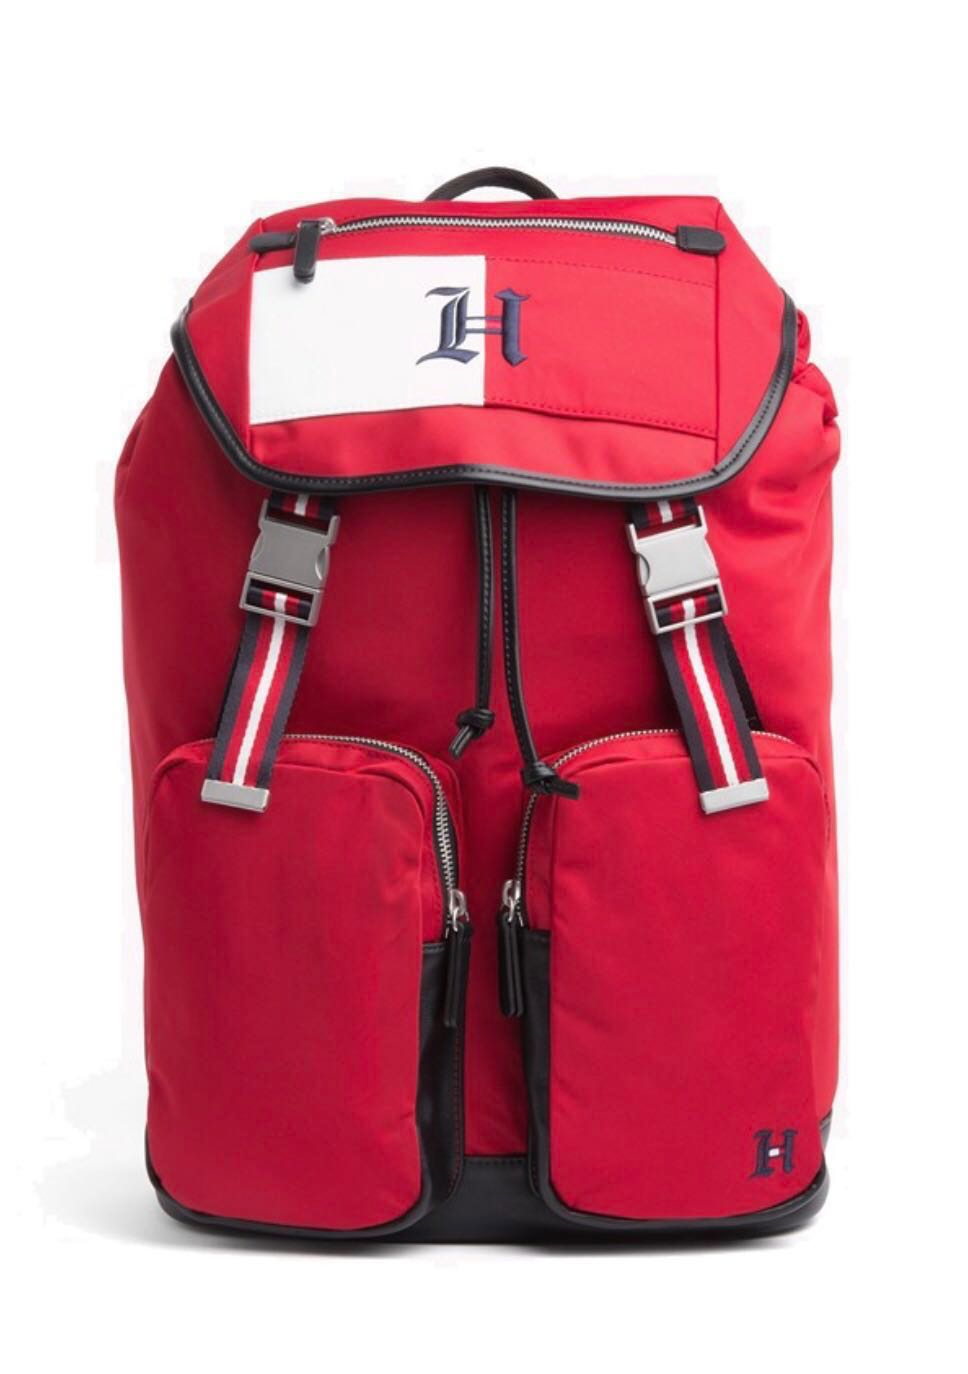 58dd81d155da Tommy X Lewis Collab Backpack Red/Black, Men's Fashion, Bags ...